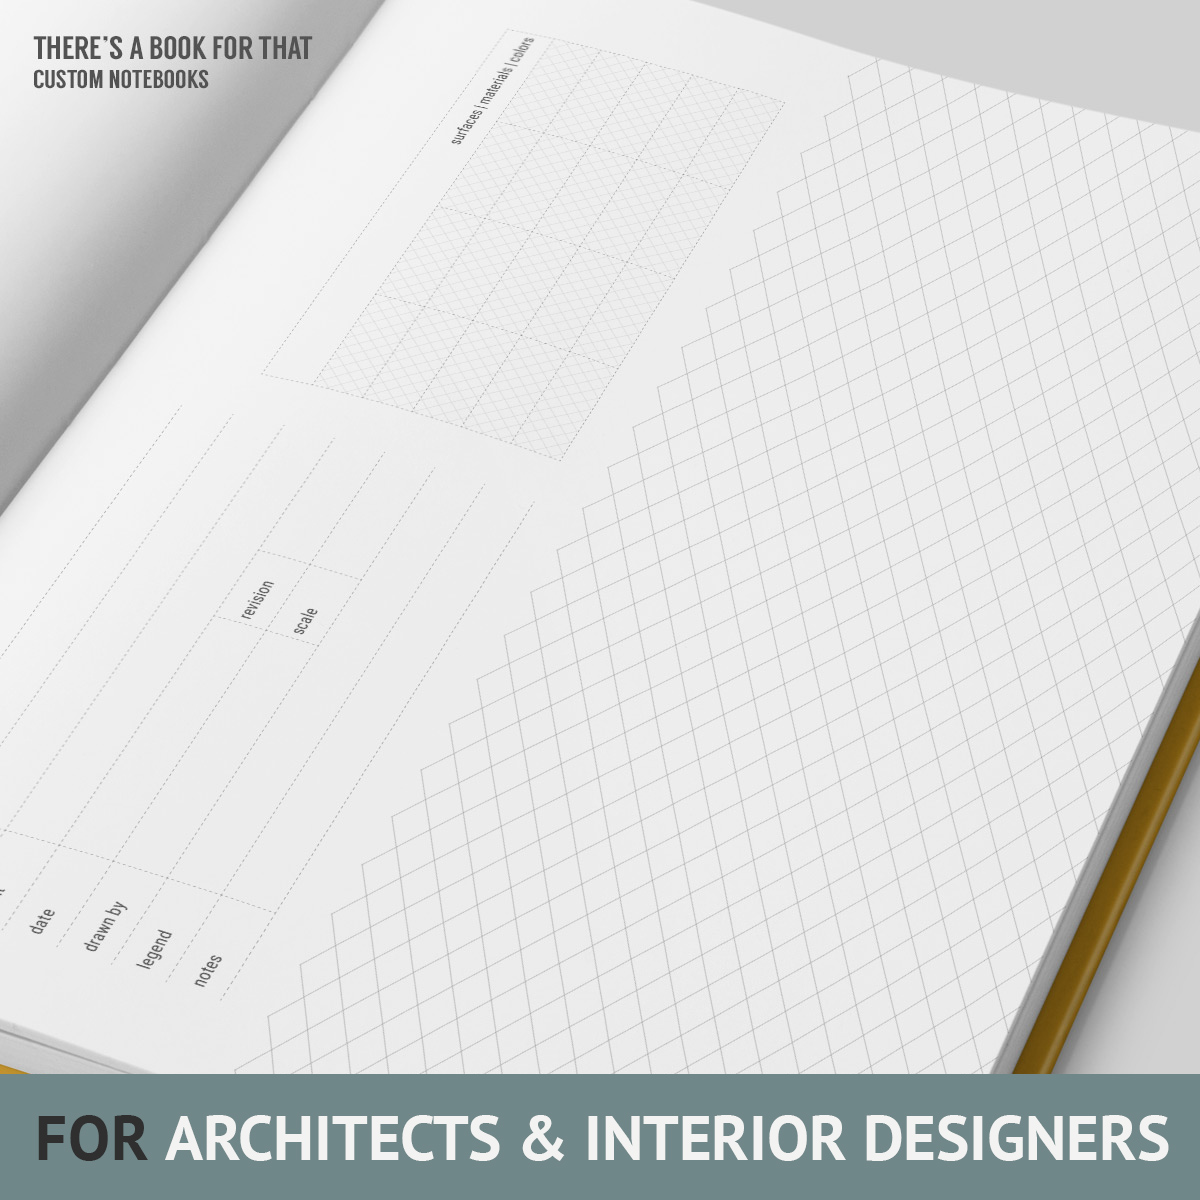 The notebook architects ISO grid is containing lot of space for your drawings, structered info boxes for data, details and stuff like surface/materials ideas. You will love this notebook for architects and interior designers.